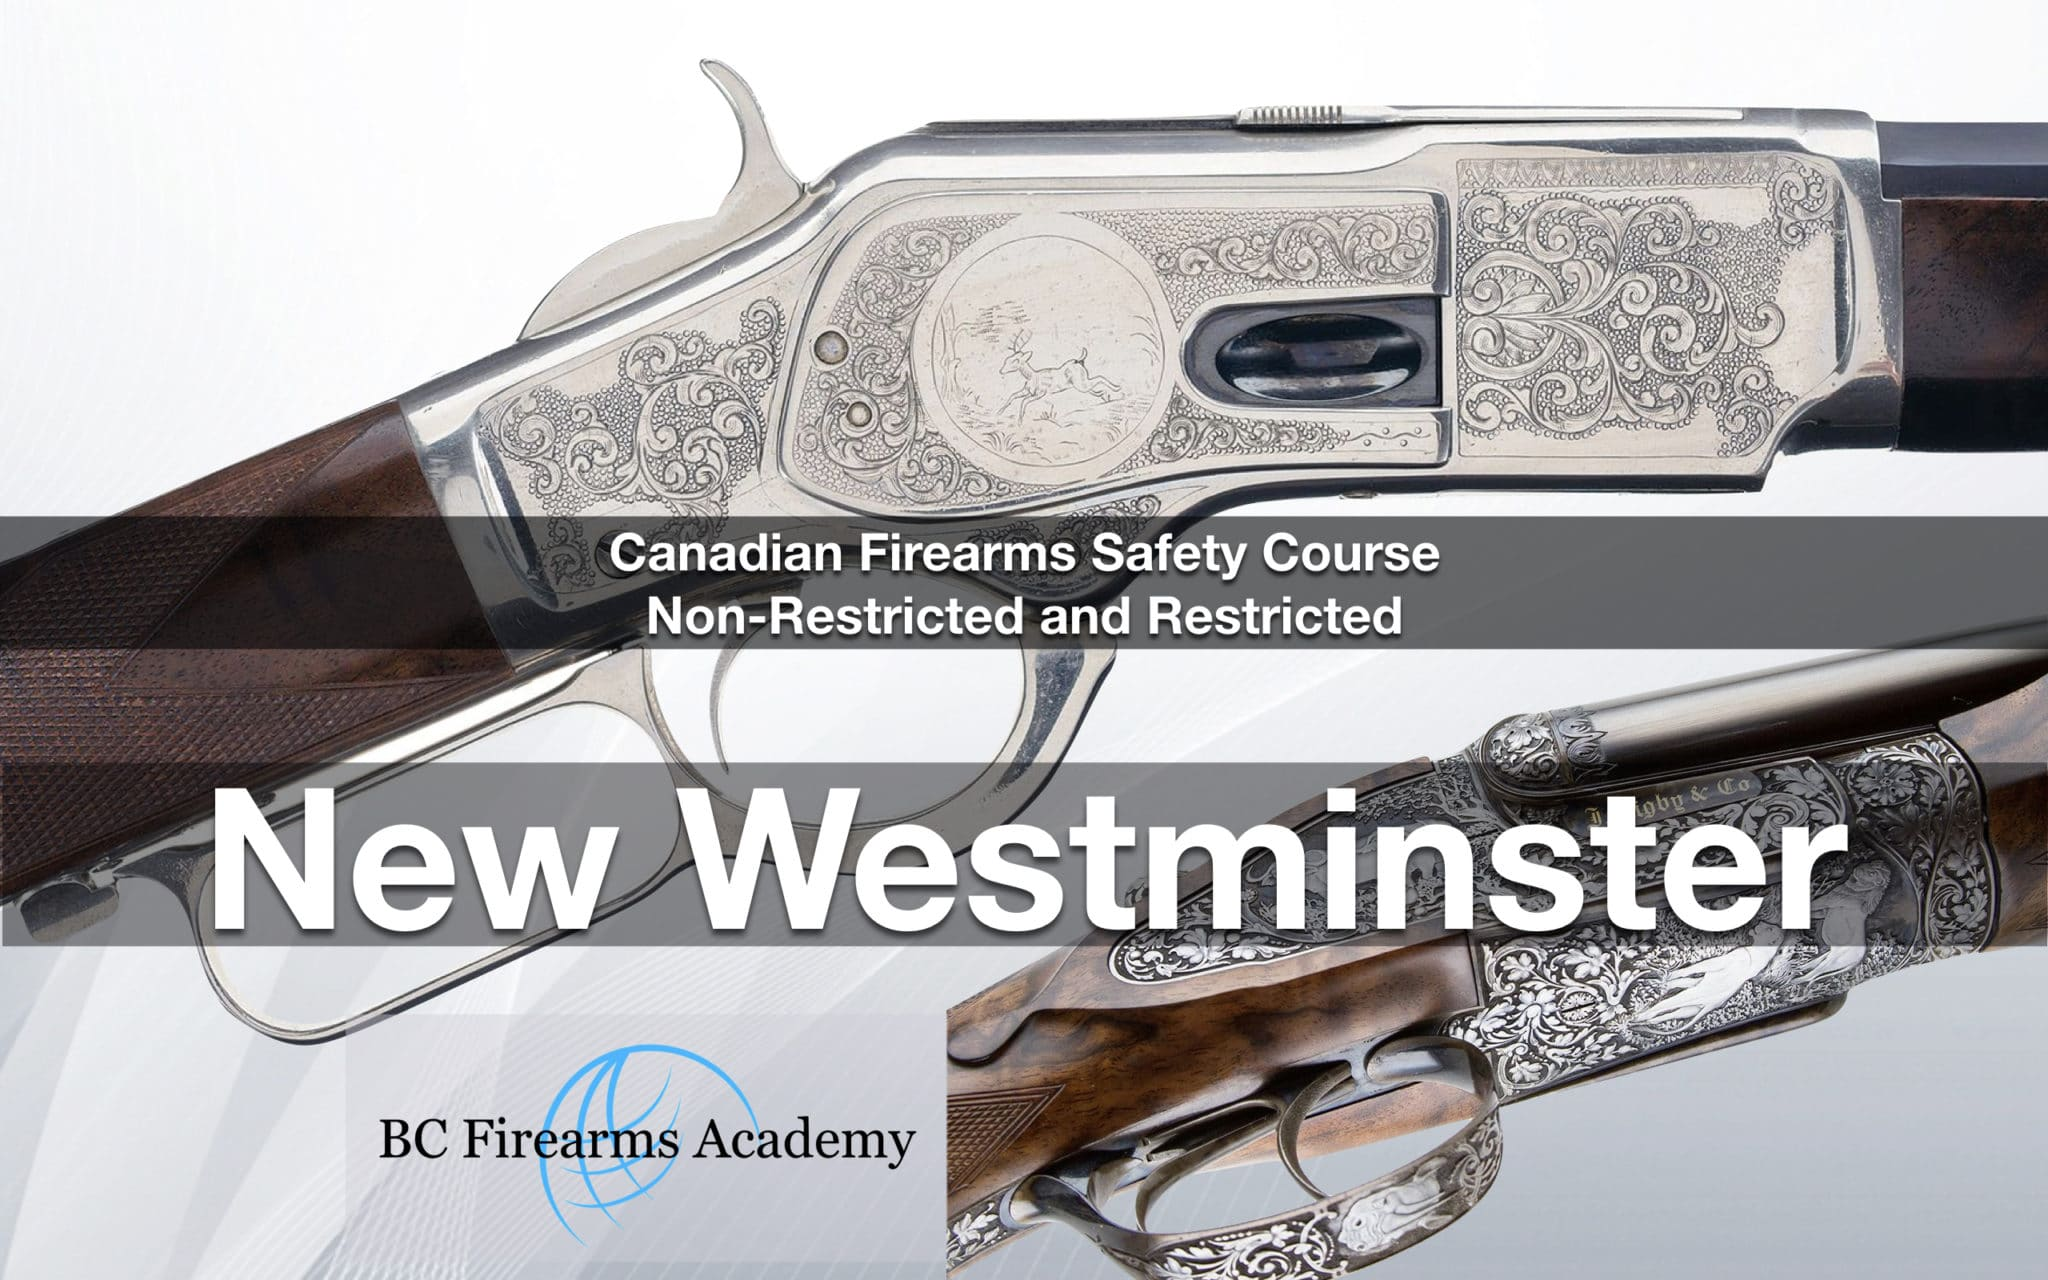 PAL Courses in New Westminster ( Canadian Firearms Safety Course CFSC )